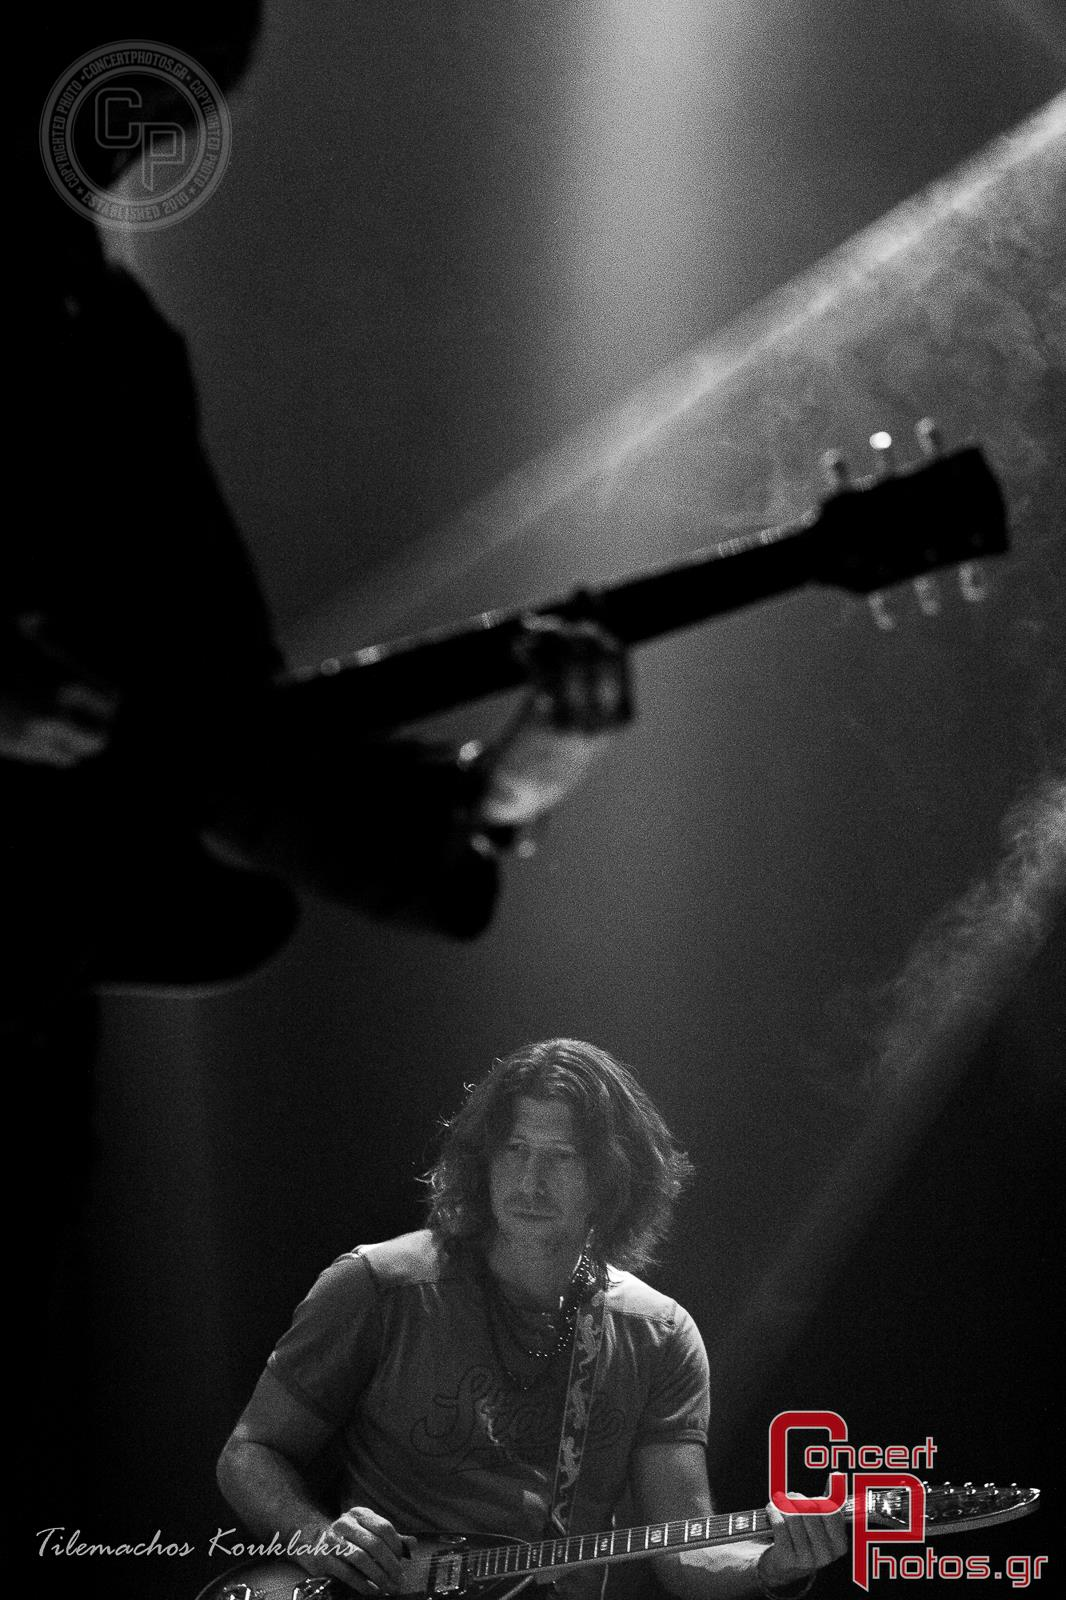 Brian Jonestown Massacre + The Velvoids-Brian Jonestown Massacre photographer:  - IMG_6364